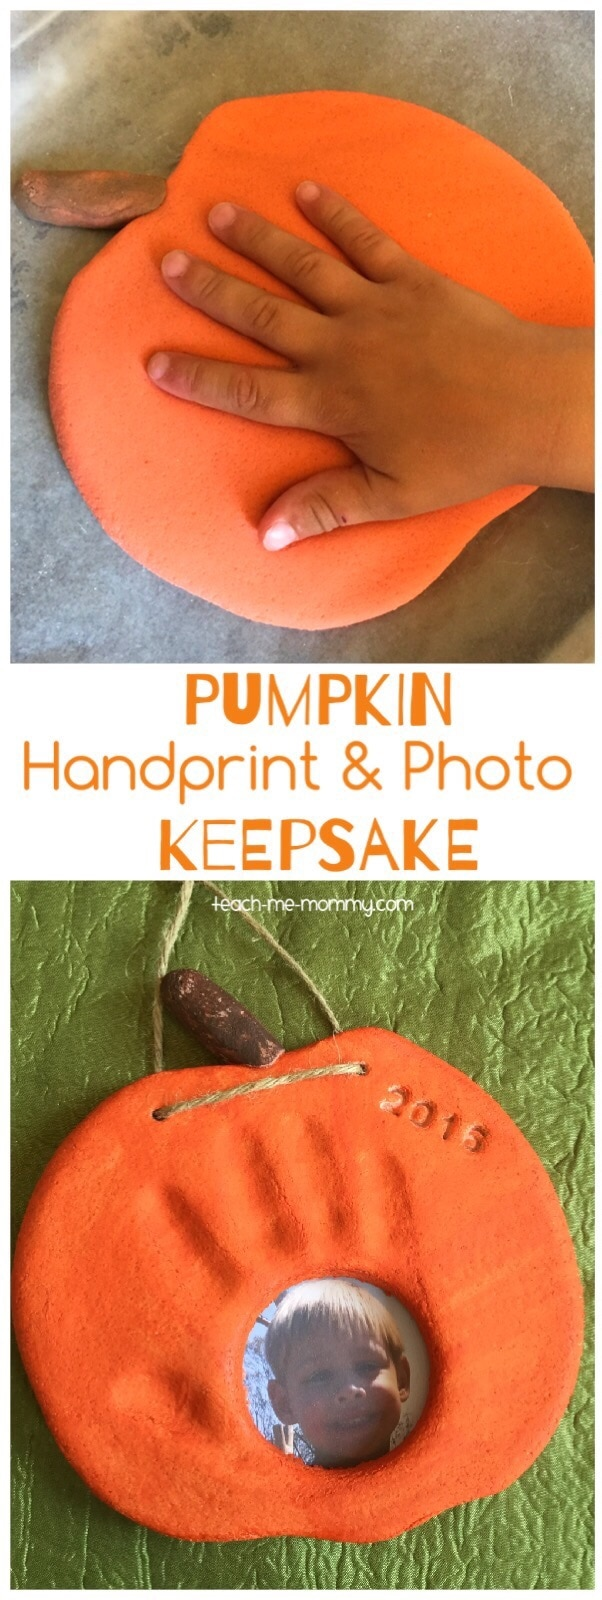 These kids Fall handprint crafts are so cute. Definitely want to make this adorable pumpkin photo frame this year.